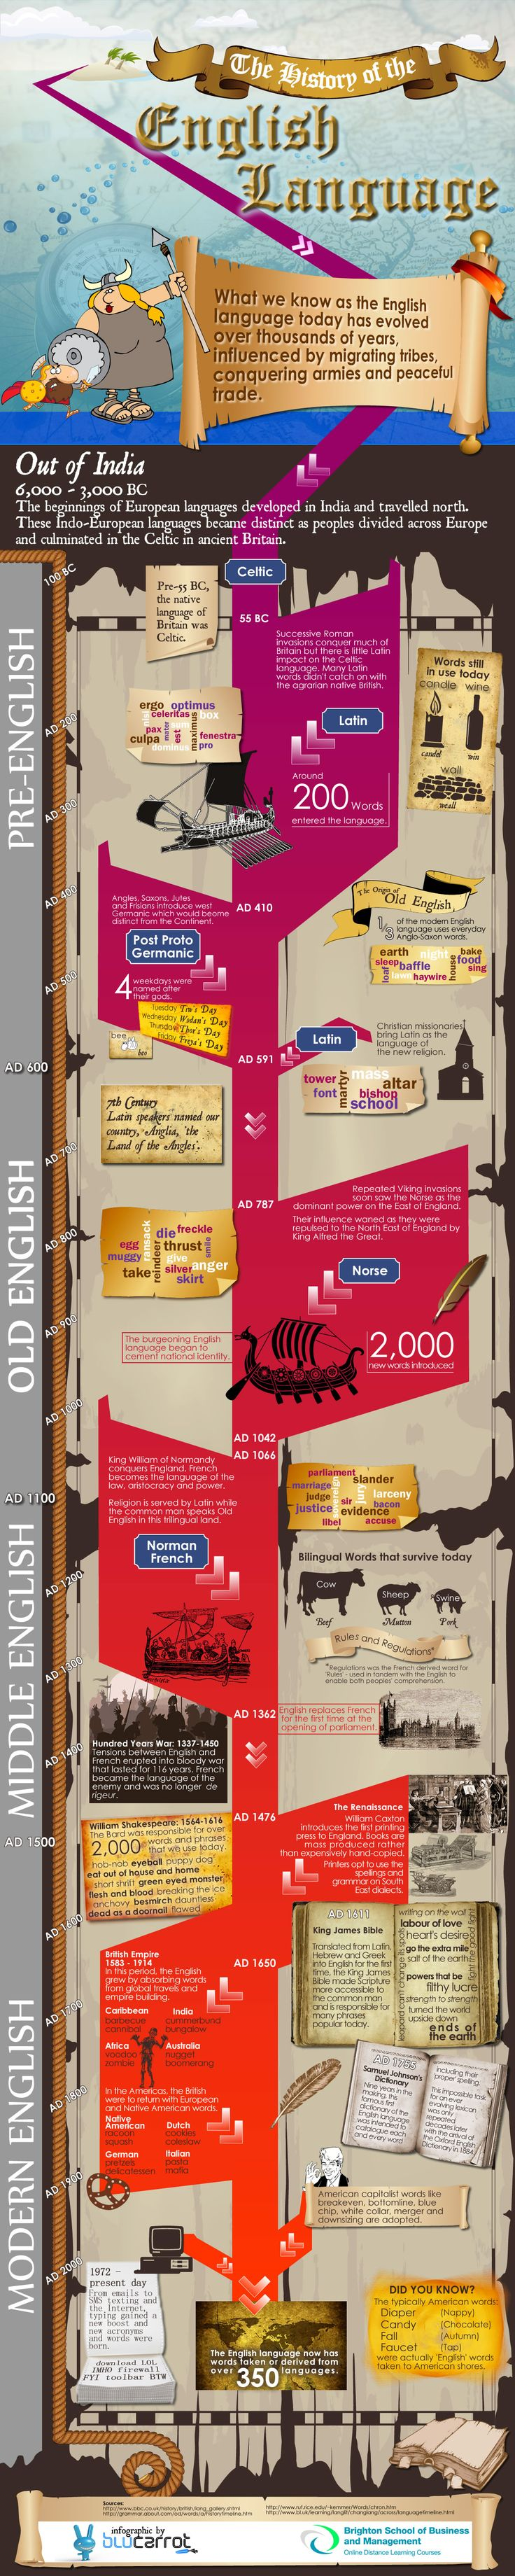 I have to say I am mildly addicted to finding these great infographics. They are an excellent way of presenting a vast amount of information in a lively, visually interesting way. I am set on findi...